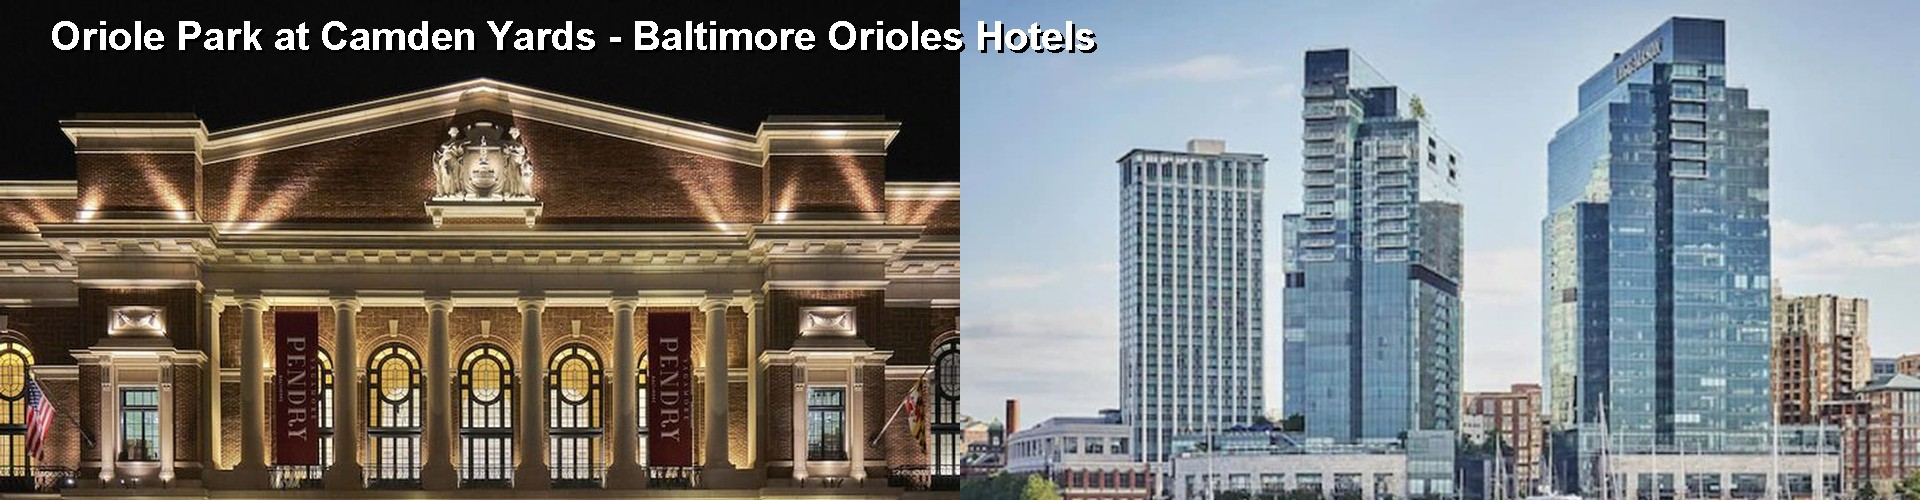 5 Best Hotels near Oriole Park at Camden Yards- Baltimore Orioles